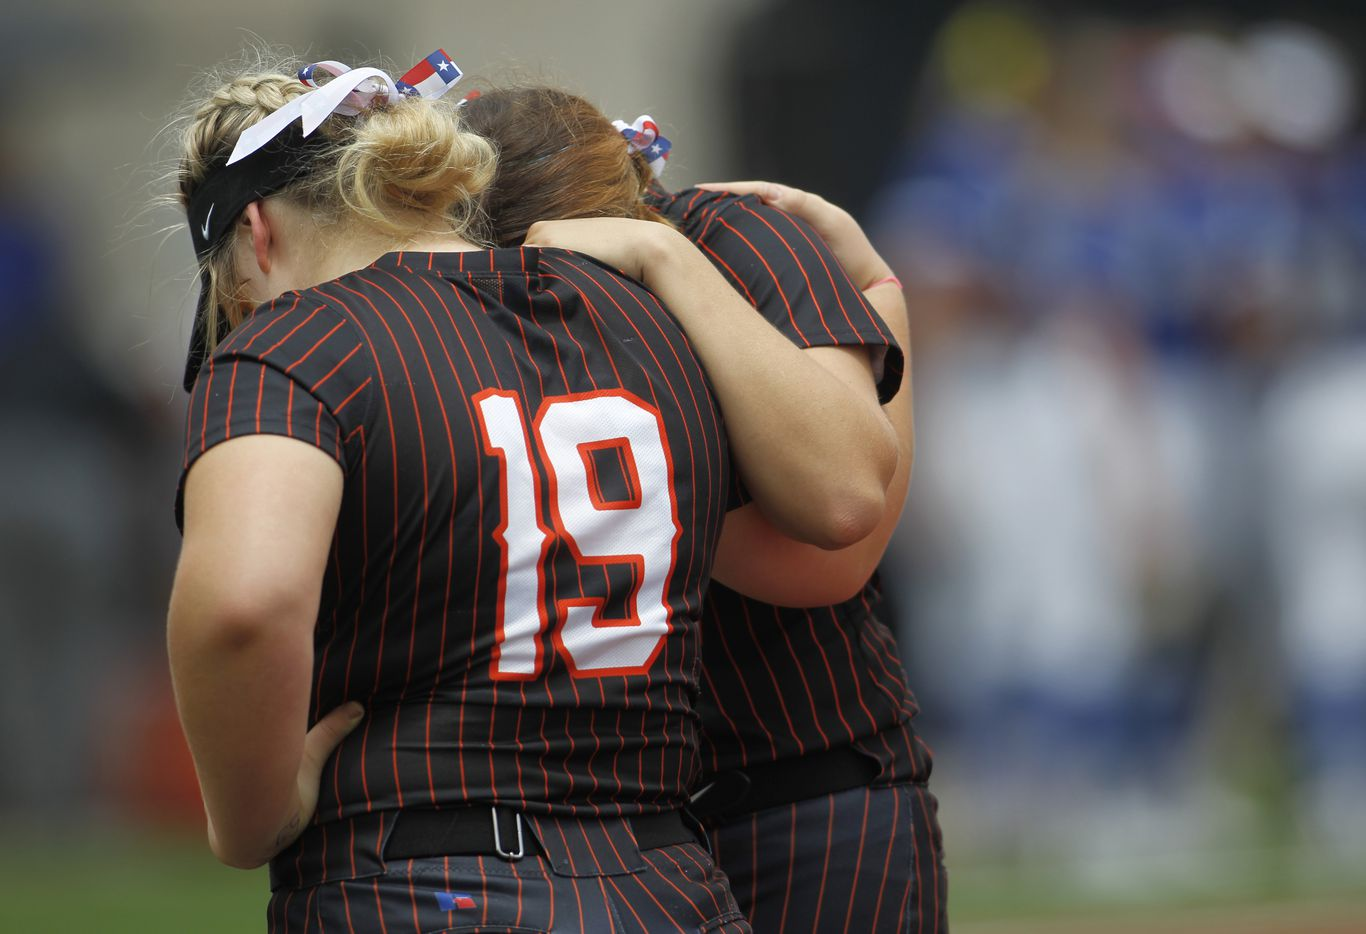 Aledo teammates Texas Ray (19) pauses to pray with a teammate at first base prior to the start of their game against Georgetown.  The two teams played their UIL 5A state softball semifinal game at Leander Glenn High School in Leander on June 4, 2021. (Steve Hamm/ Special Contributor)